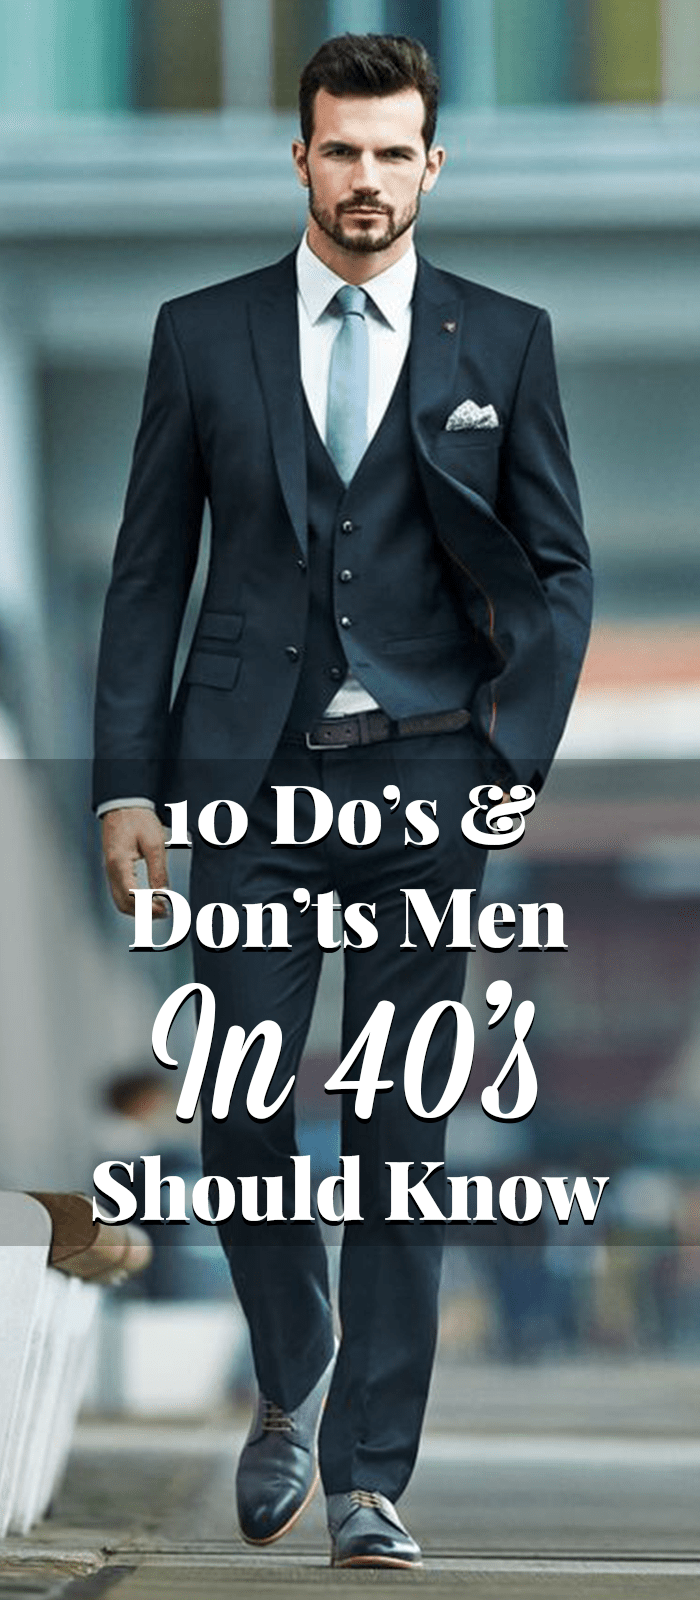 How A Man Should Dress In His 40s How A Man Should Dress In His 40s new images